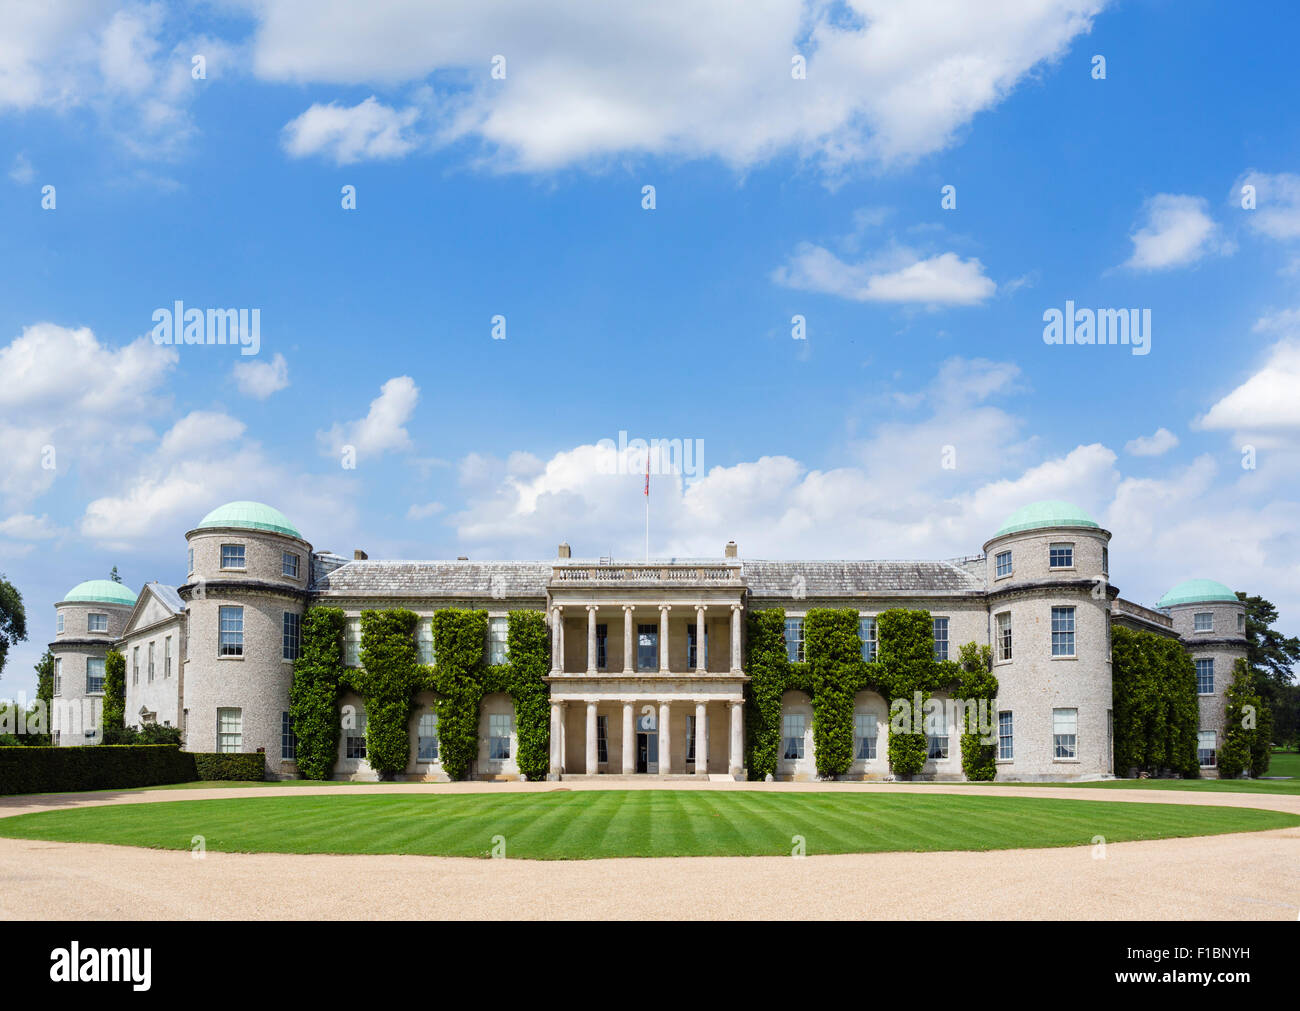 Goodwood House, West Sussex, England, UK - Stock Image